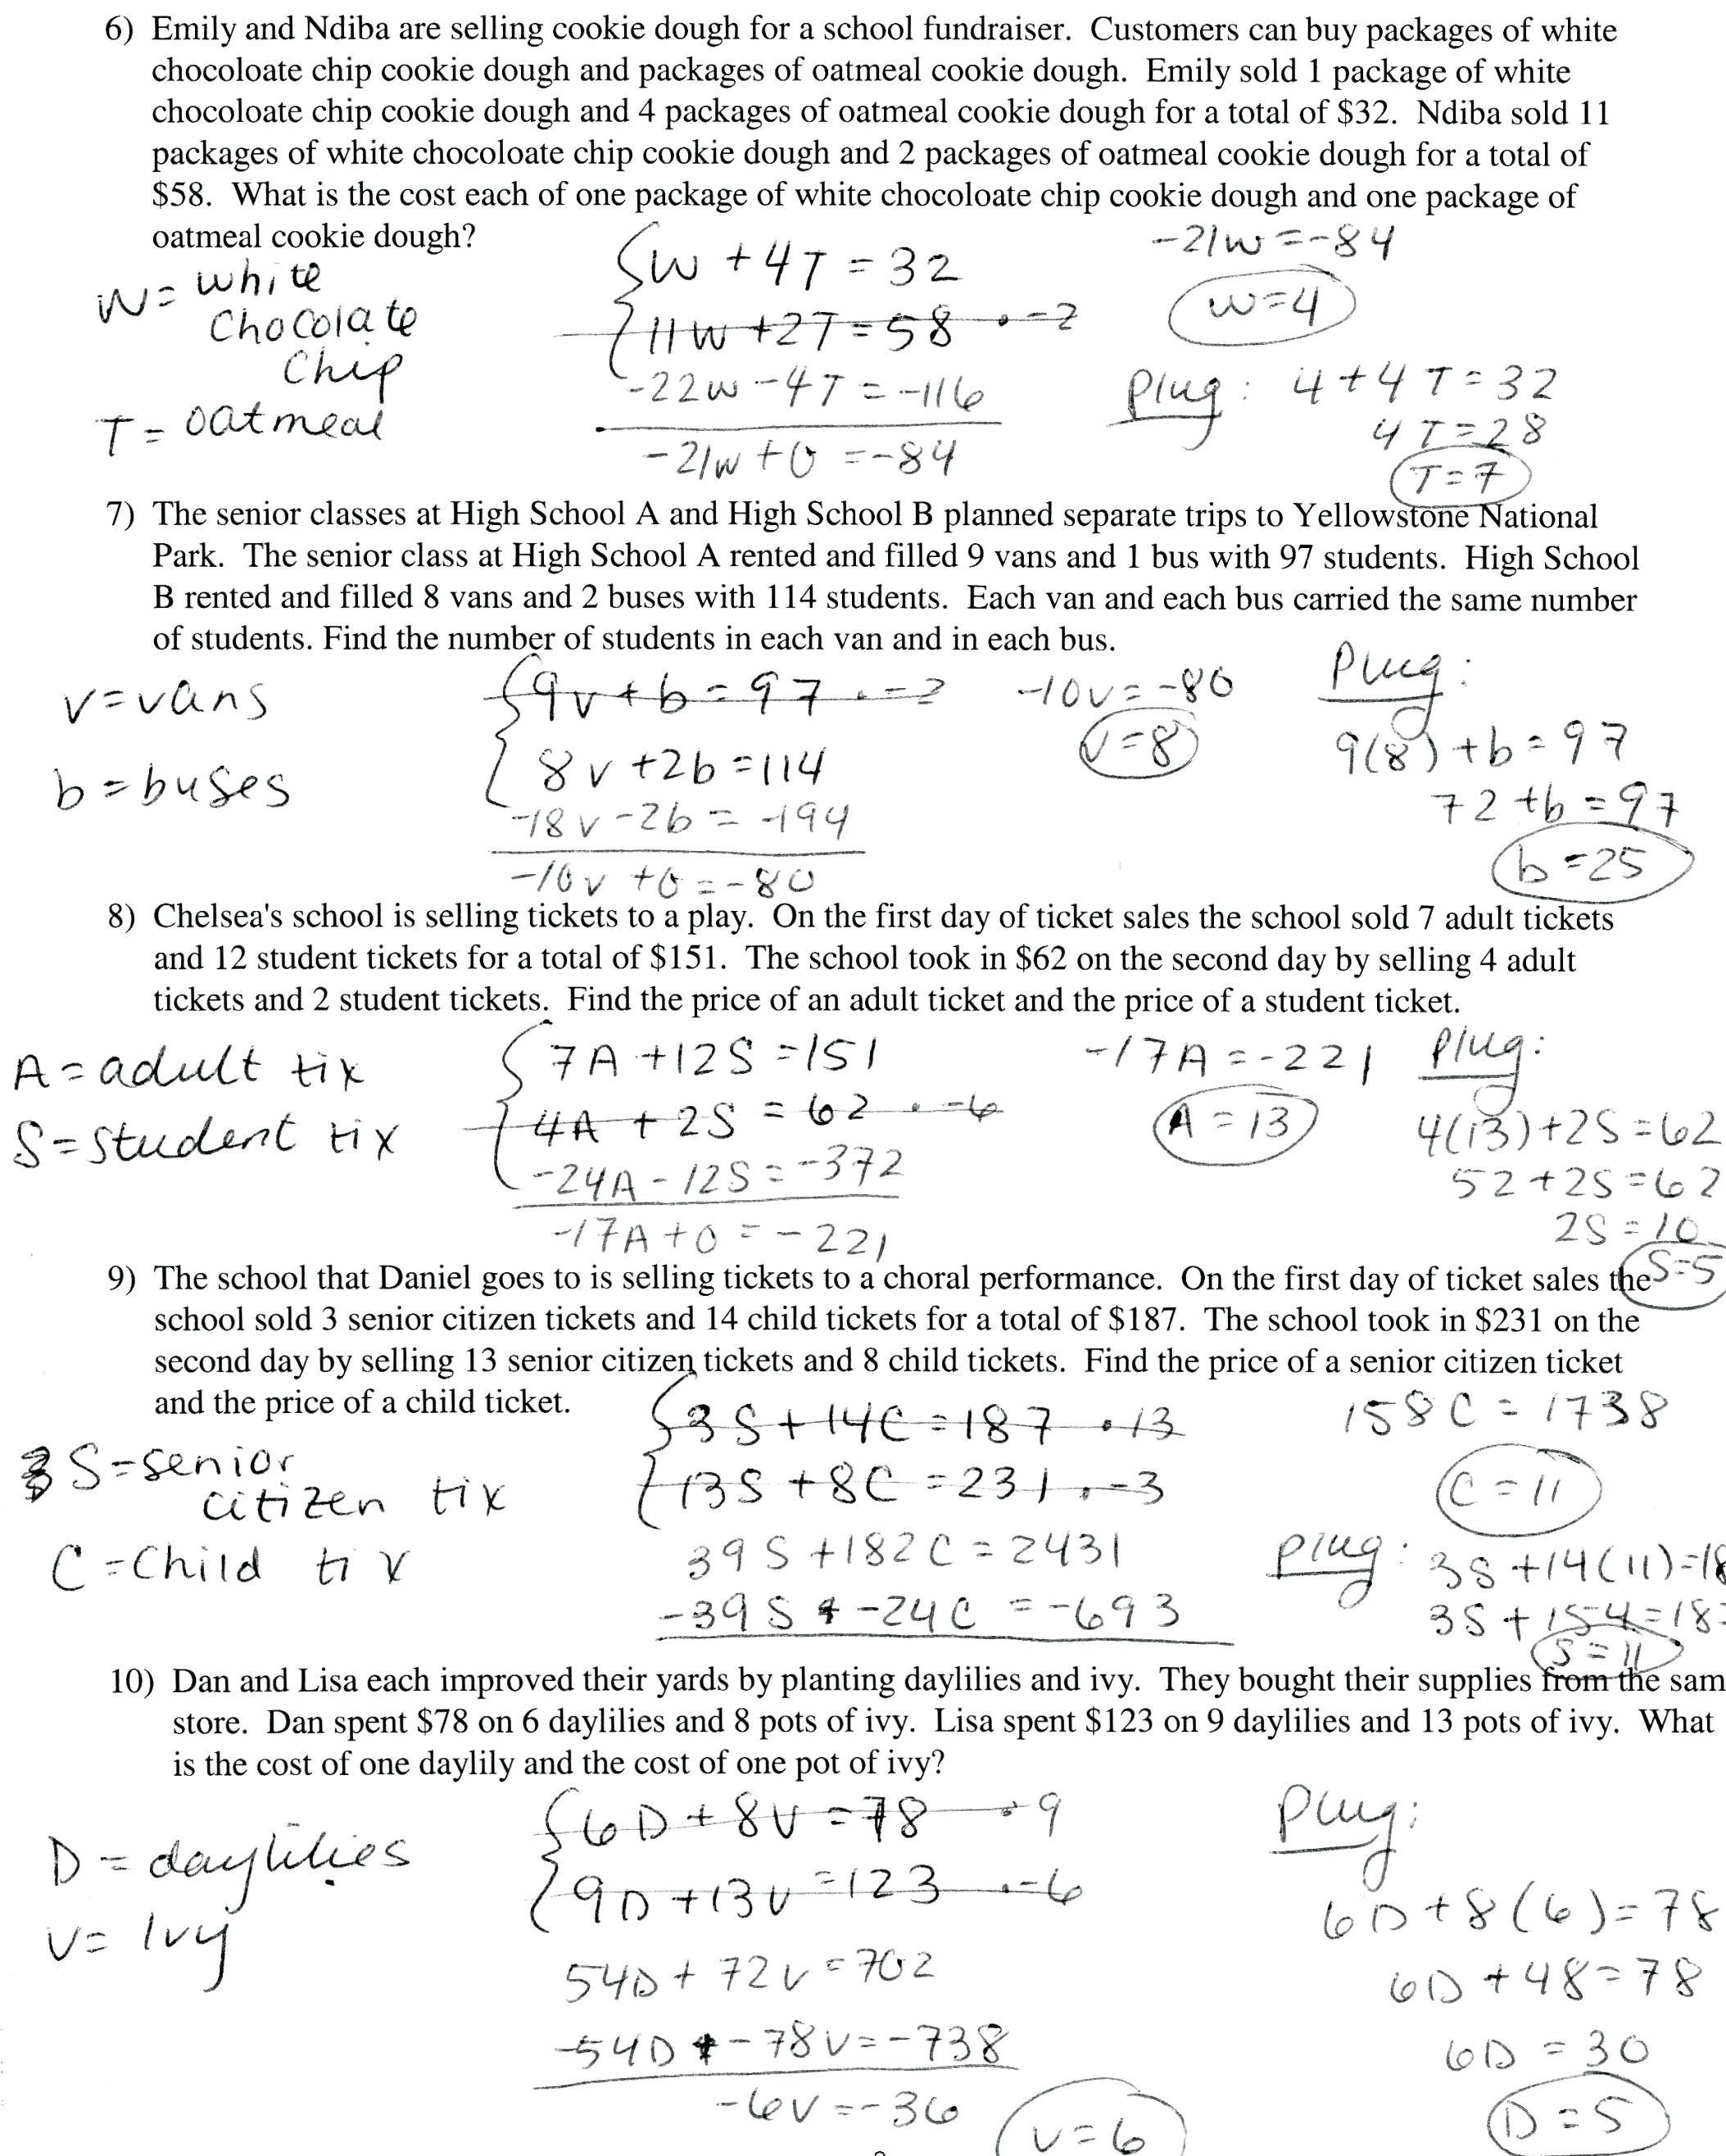 Simultaneous Equations Word Problems Math Writing Linear Equations In Systems Of Equations Word Problems Worksheet